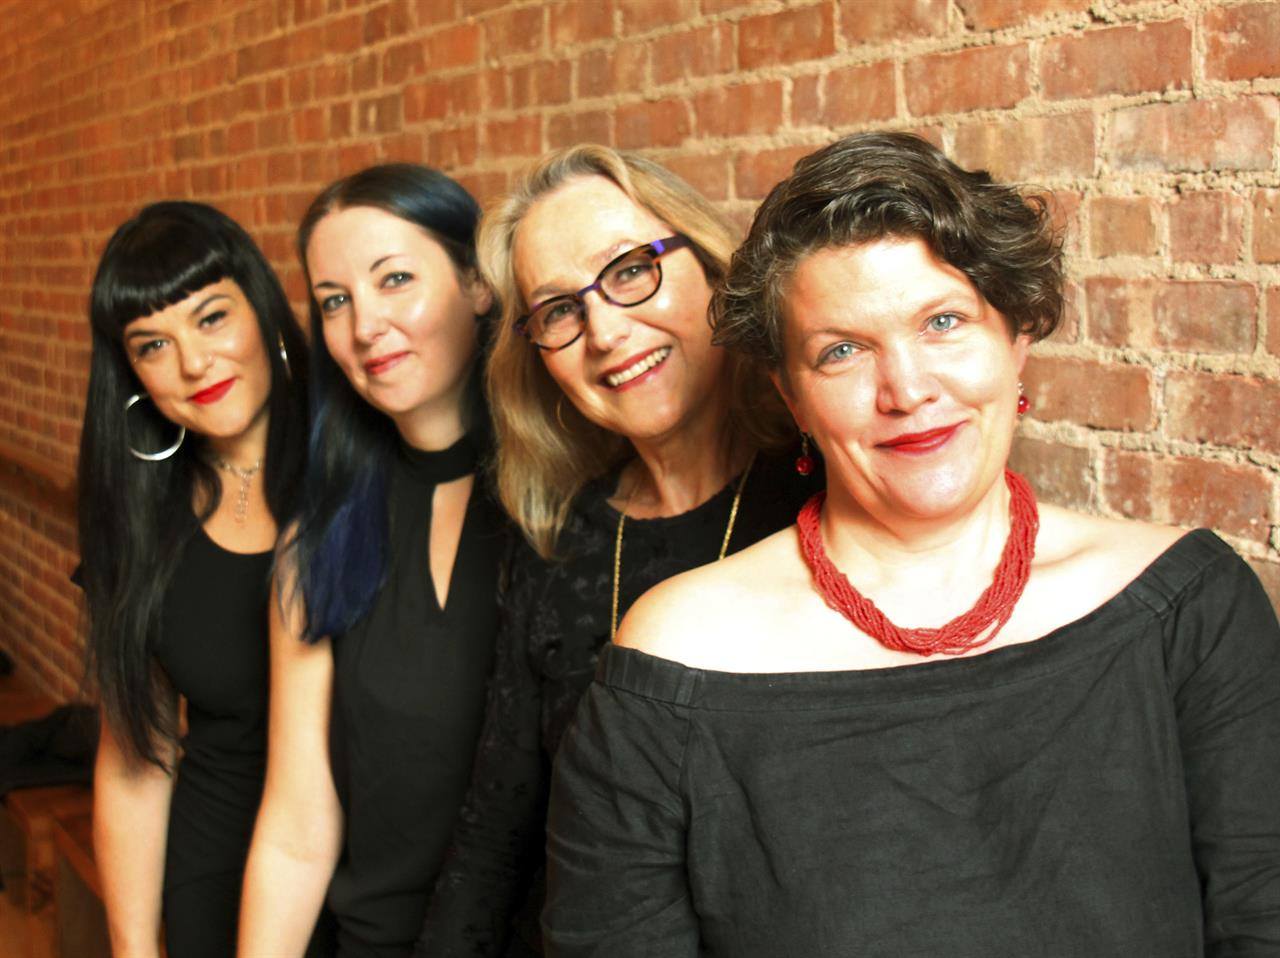 Knus Wonen Run By Women Prototype Festival Showcases Diverse Composers 710